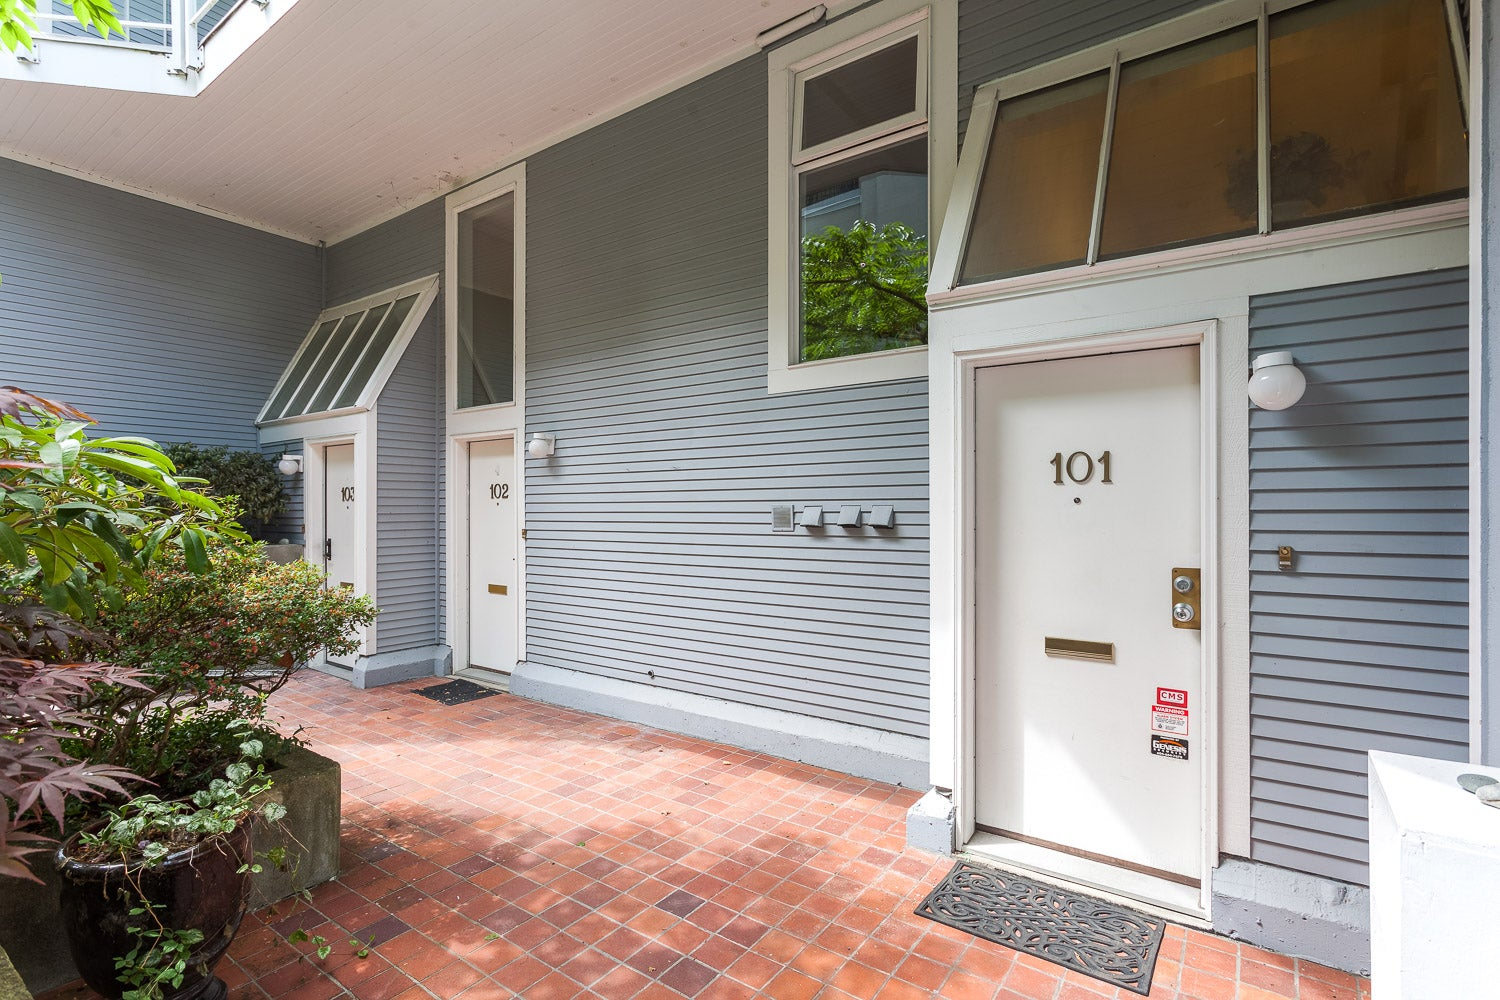 101 4696 W 10TH AVENUE - Point Grey Apartment/Condo for sale, 2 Bedrooms (R2203906) #21